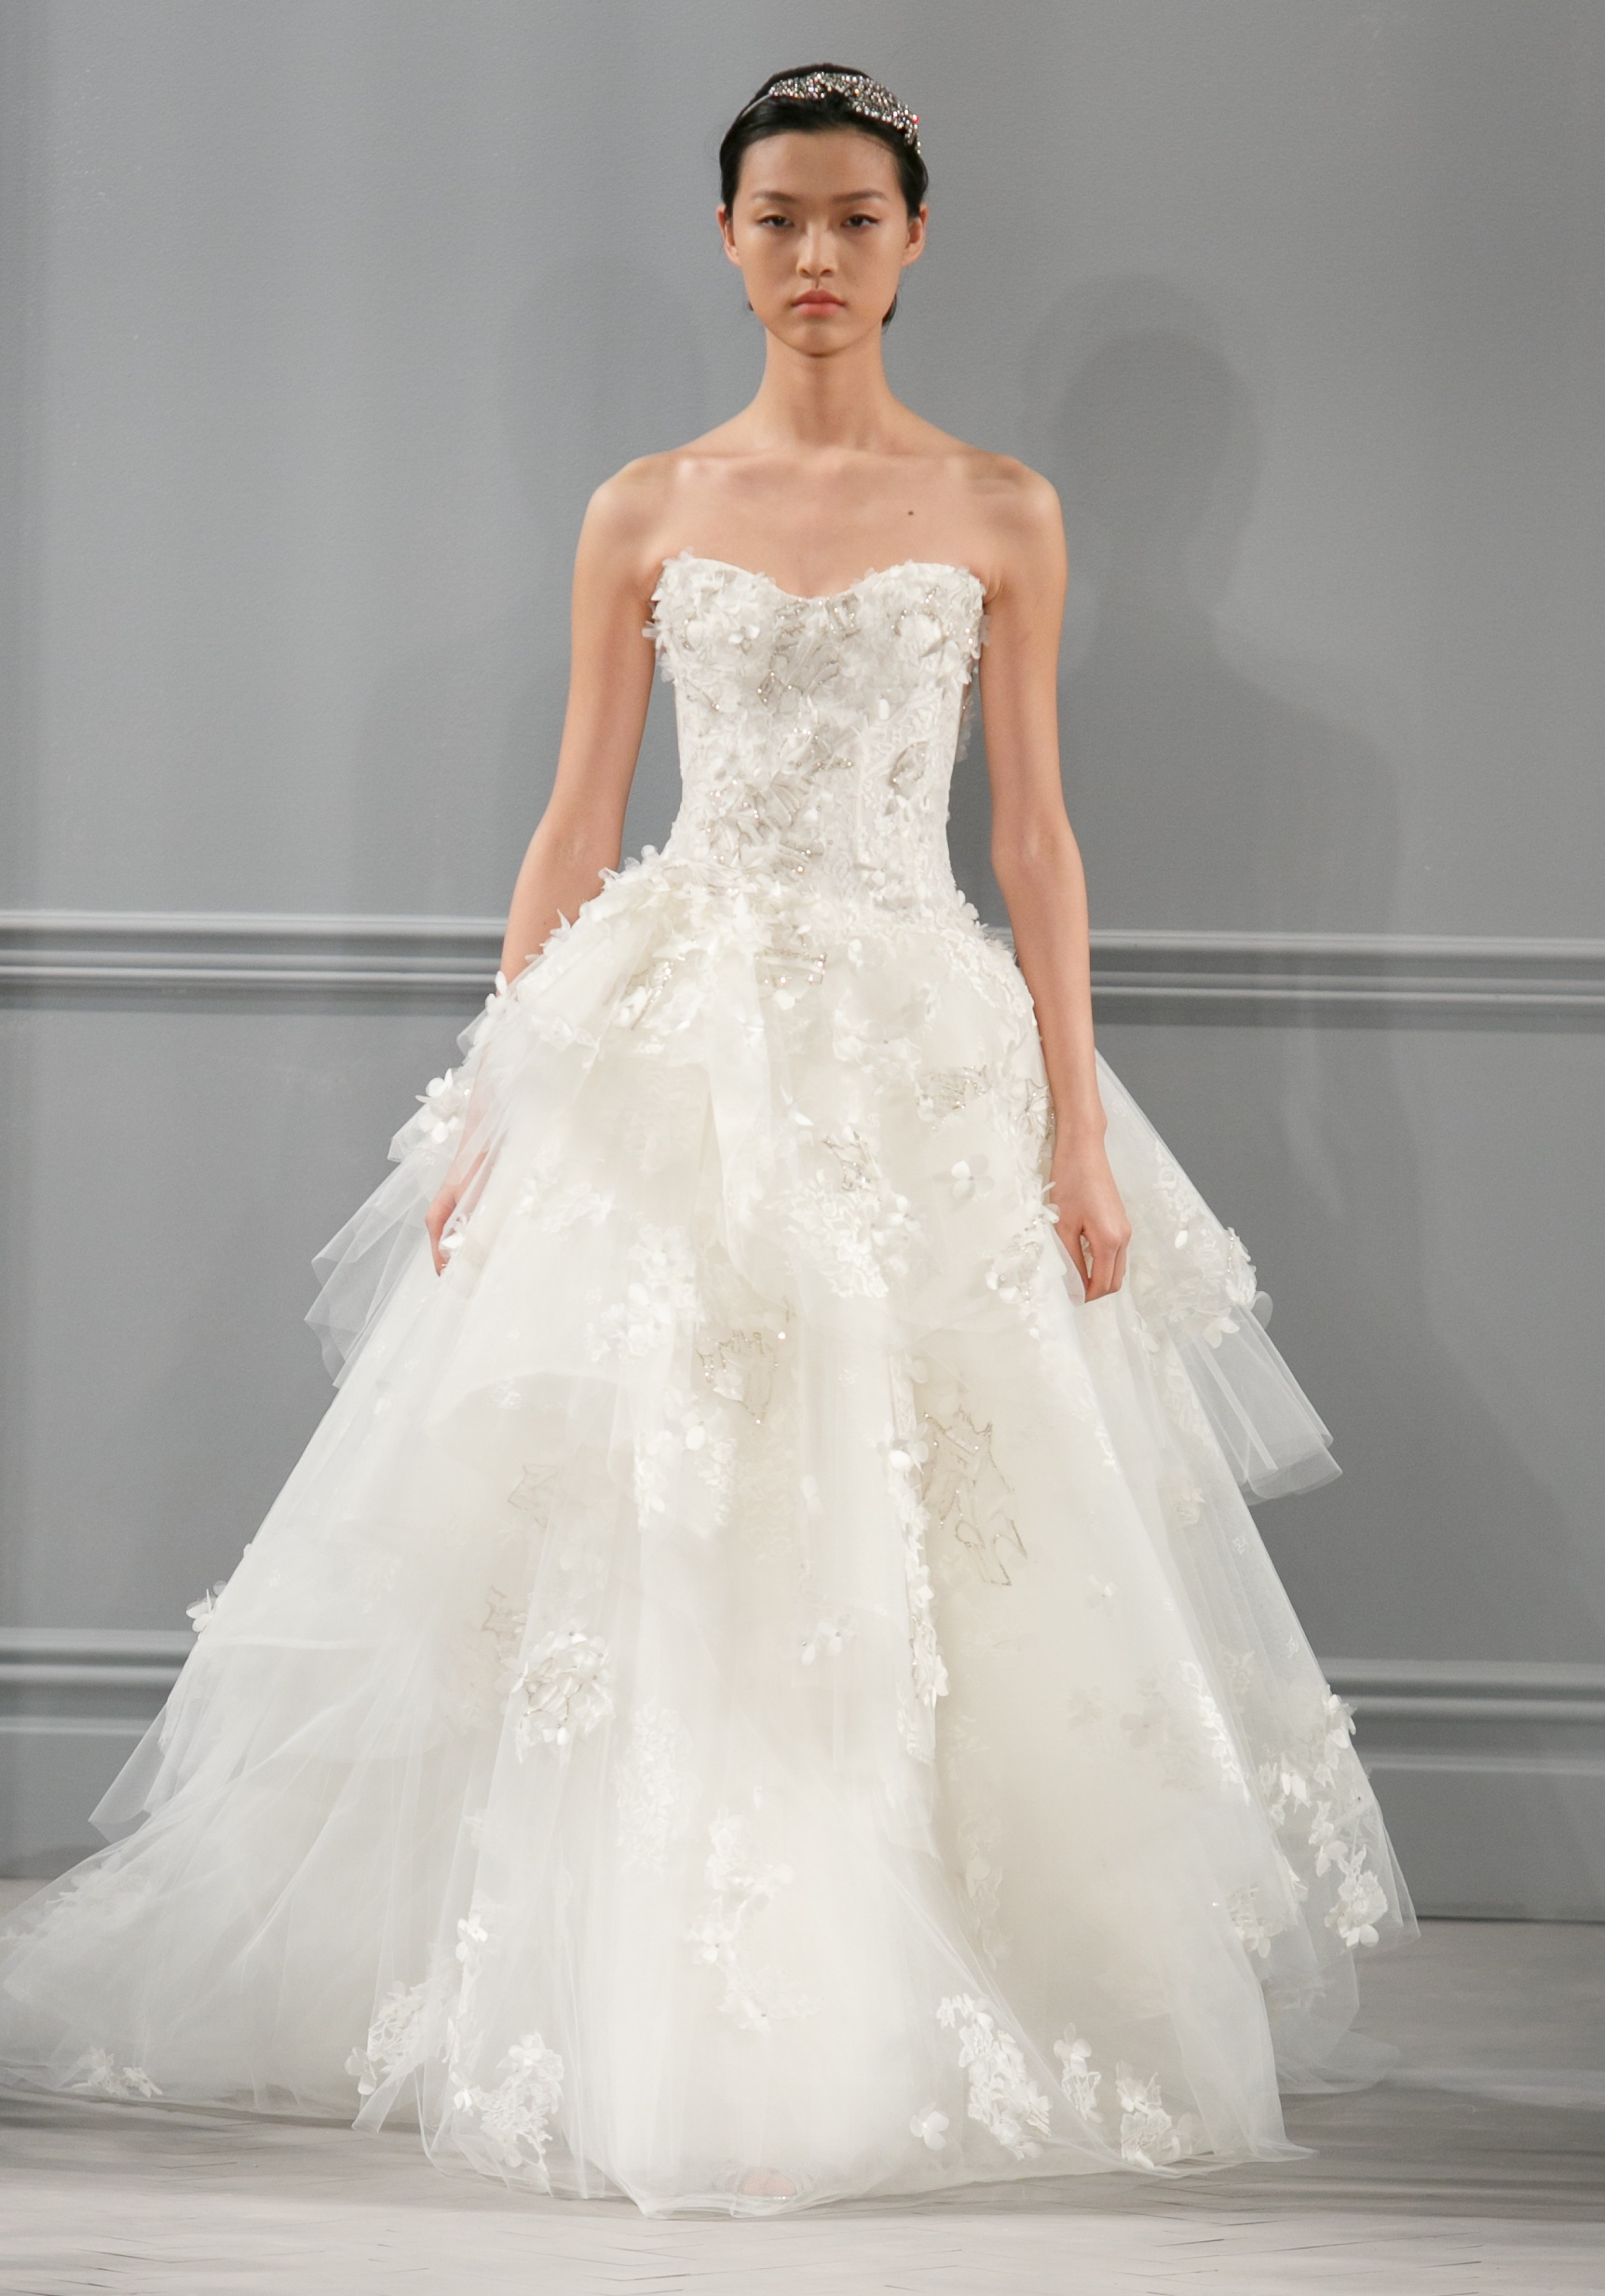 Spring 2014 wedding dress monique lhuillier bridal bijou for Monique lhuillier wedding dress